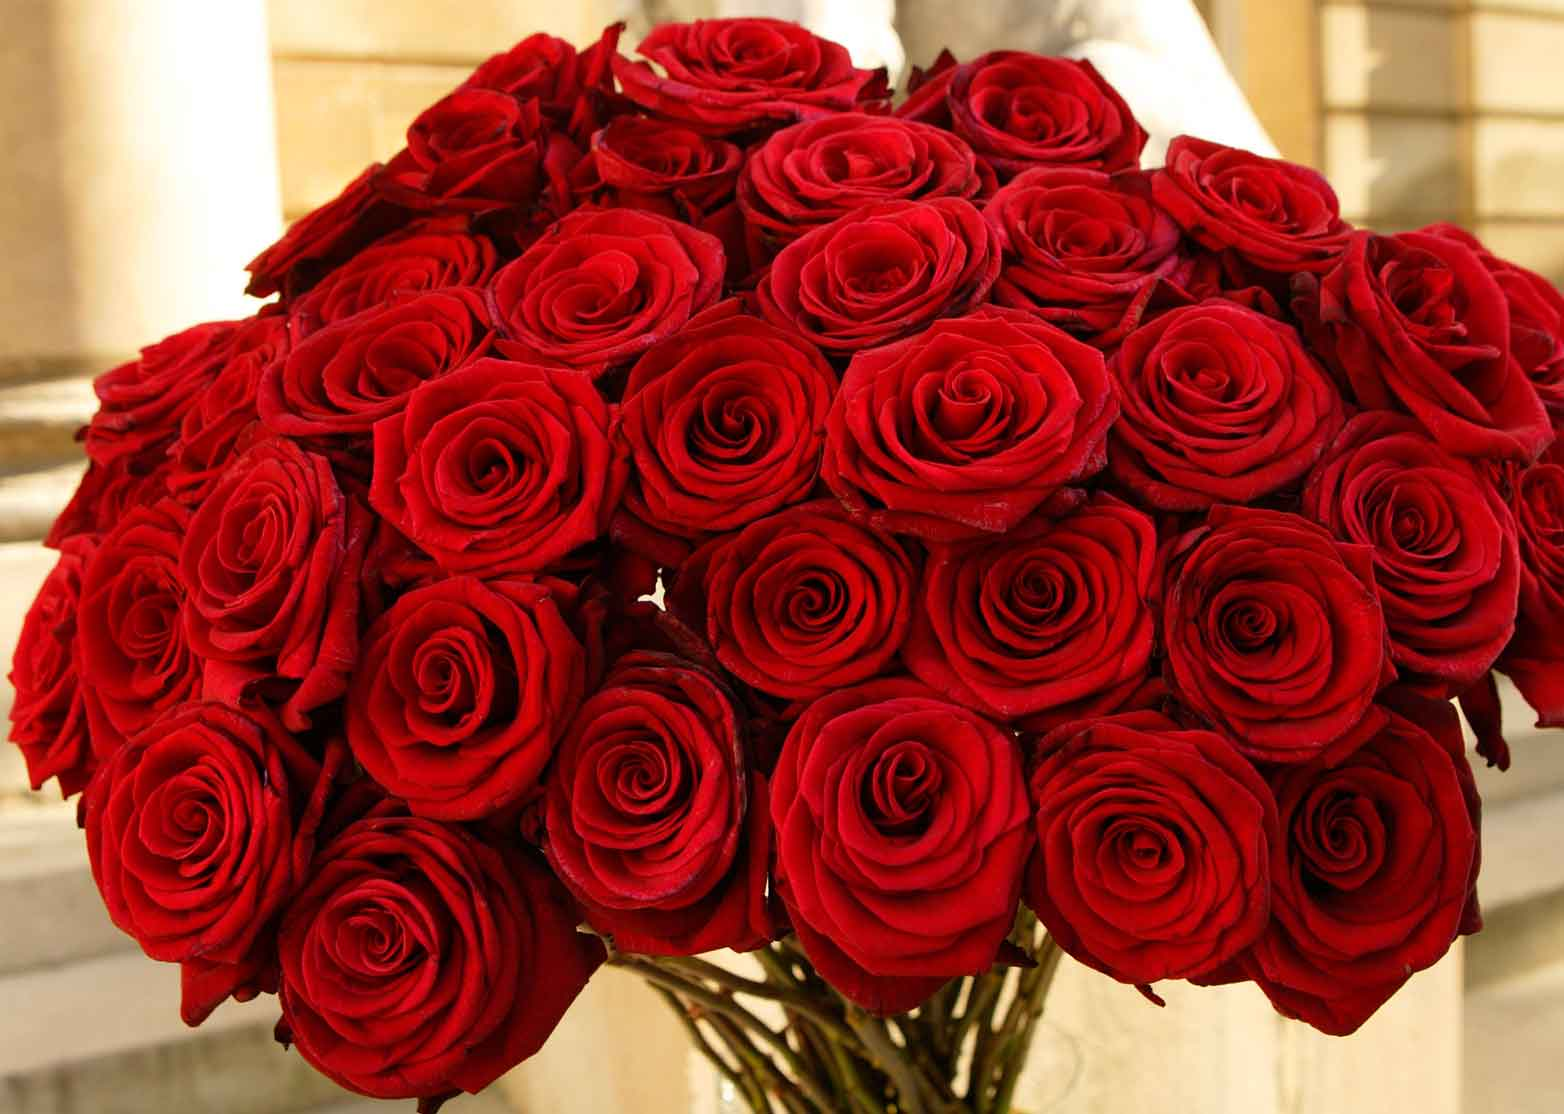 Roses for valentines day buy roses online valentines day for Buying roses on valentines day